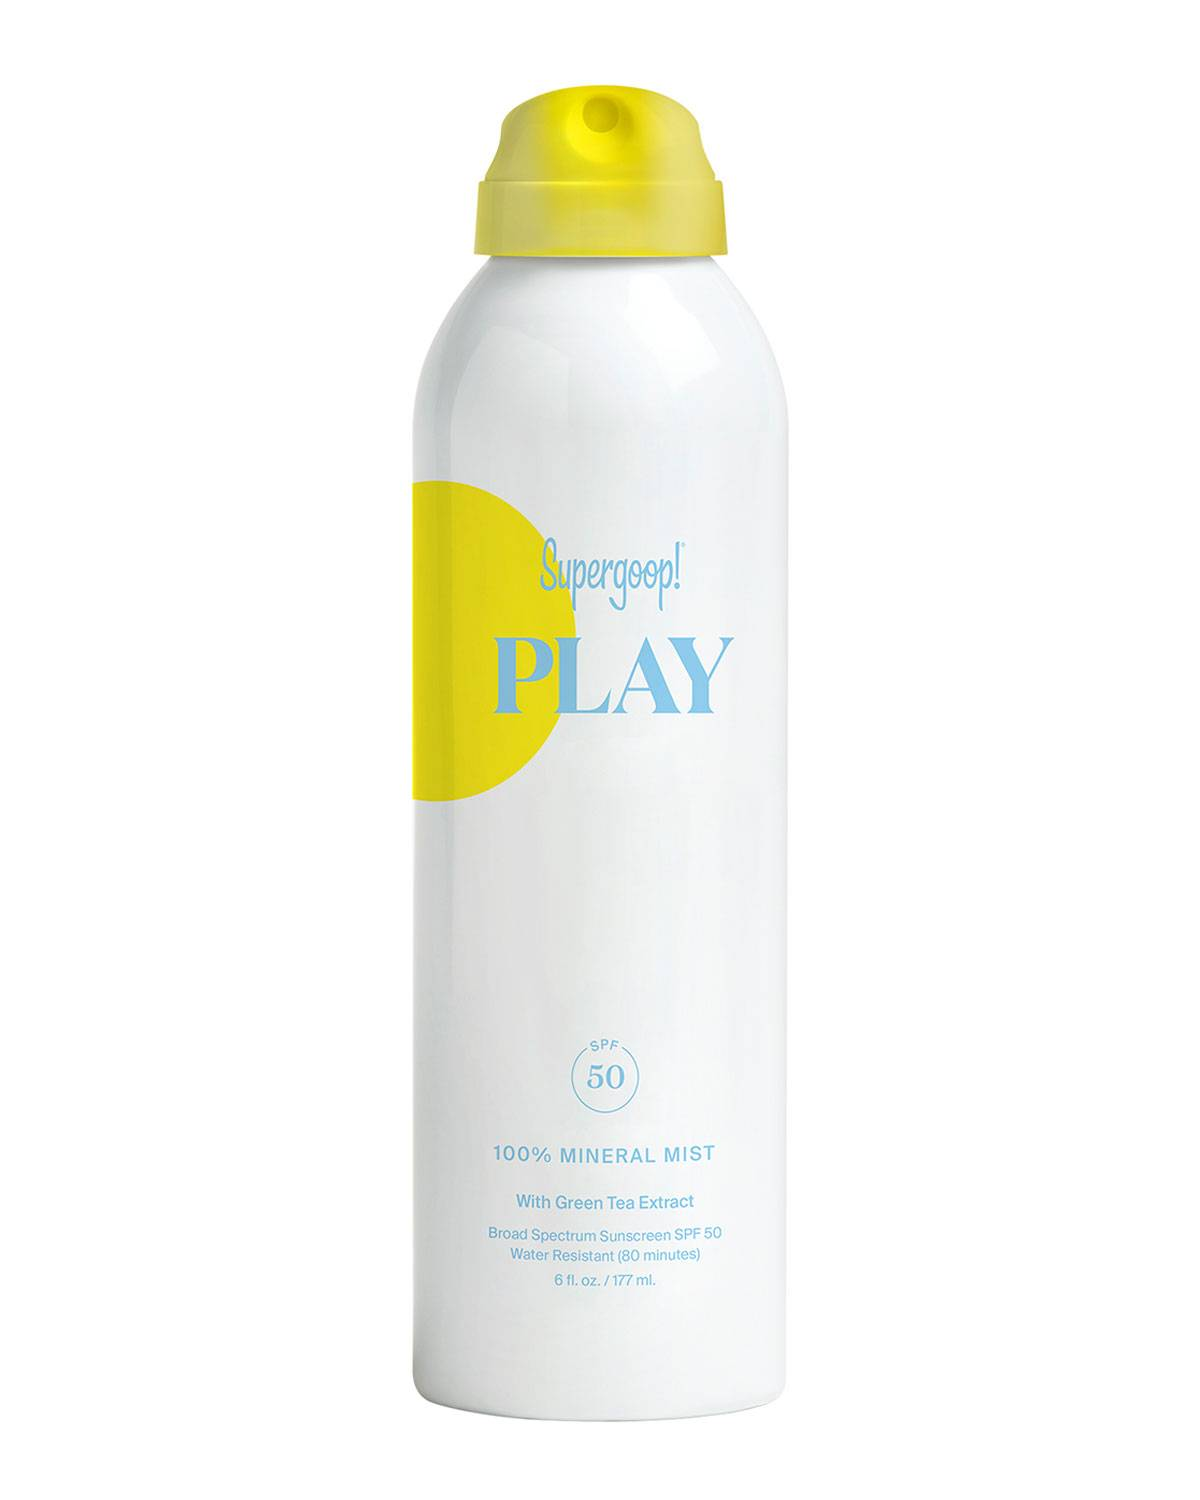 Supergoop 6 oz. PLAY 100% Mineral Body Mist SPF 50 with Green Tea Extract